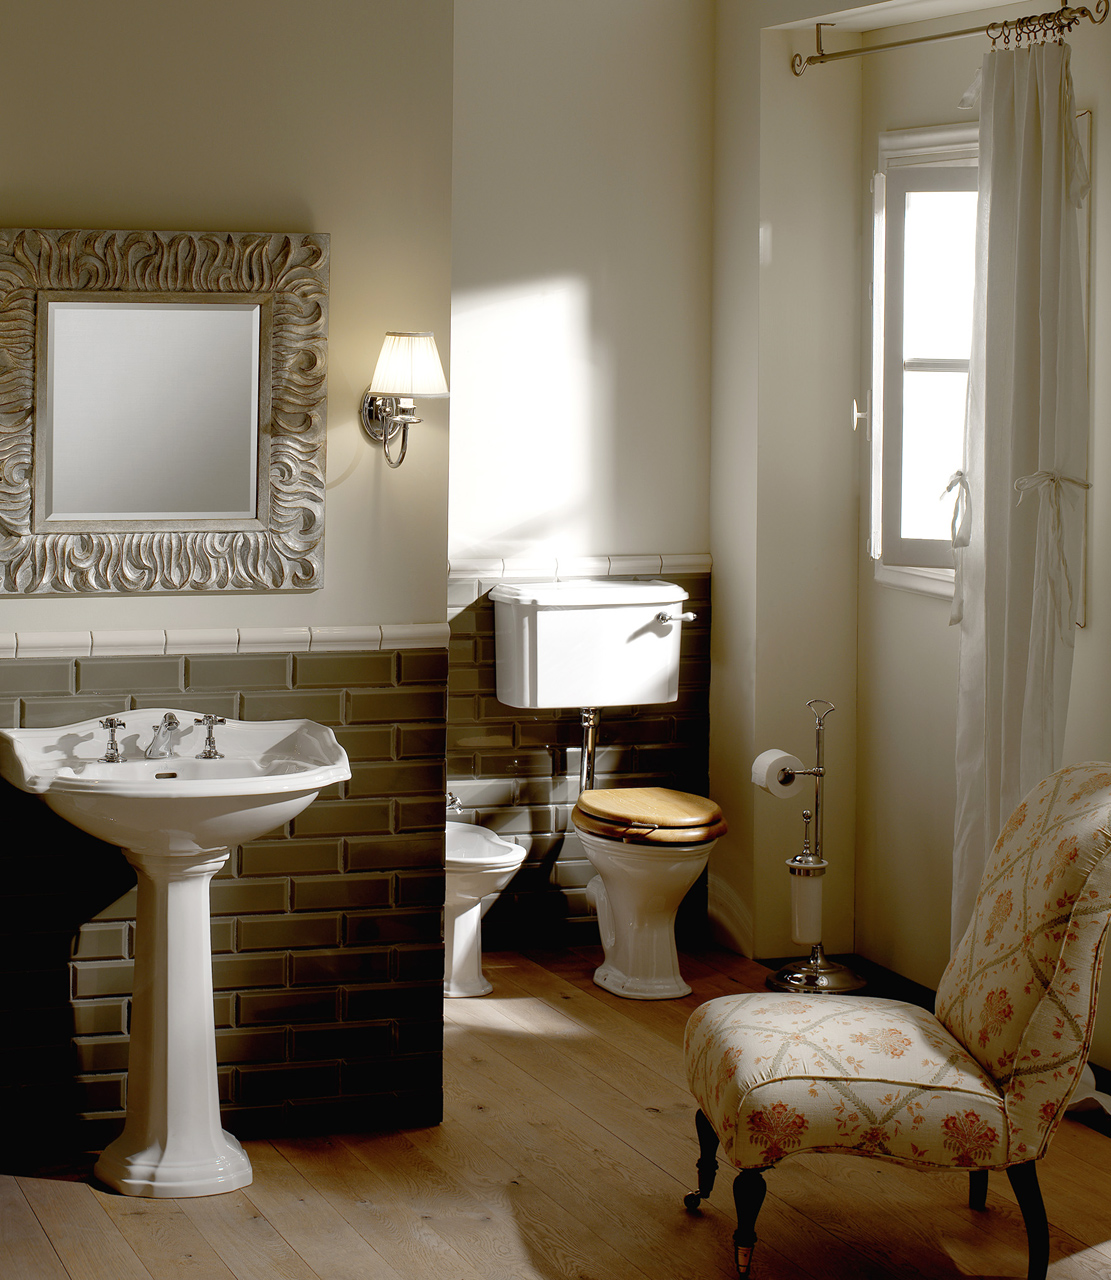 Classic Bathrooms: Devon & Devon: Oxford-Completa